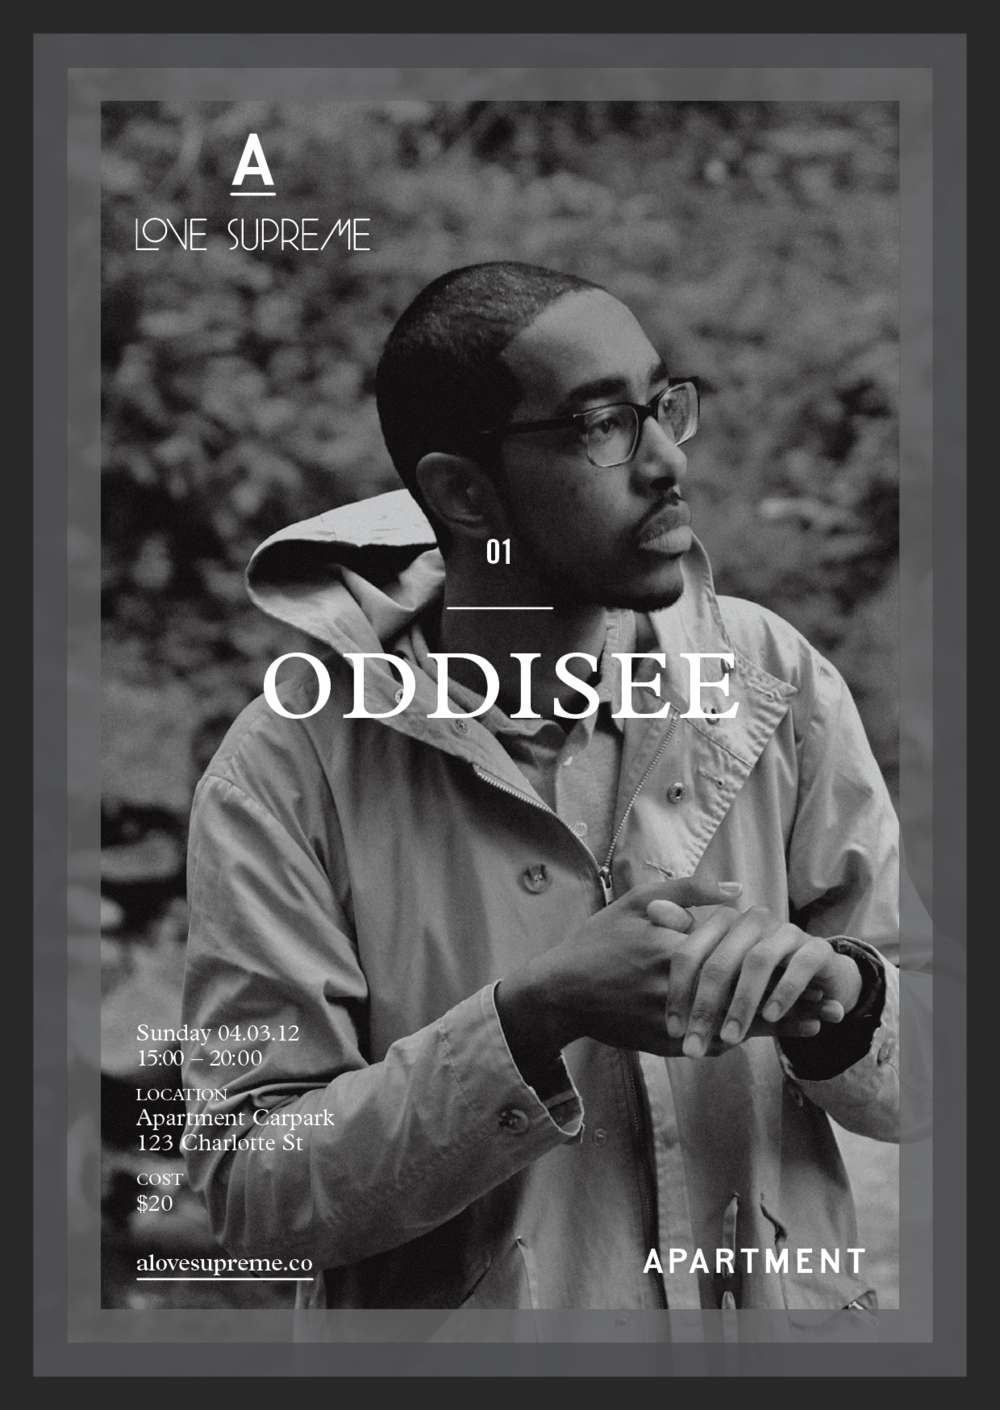 ALS-alovesupreme-01-oddisee-postcard-press-.png